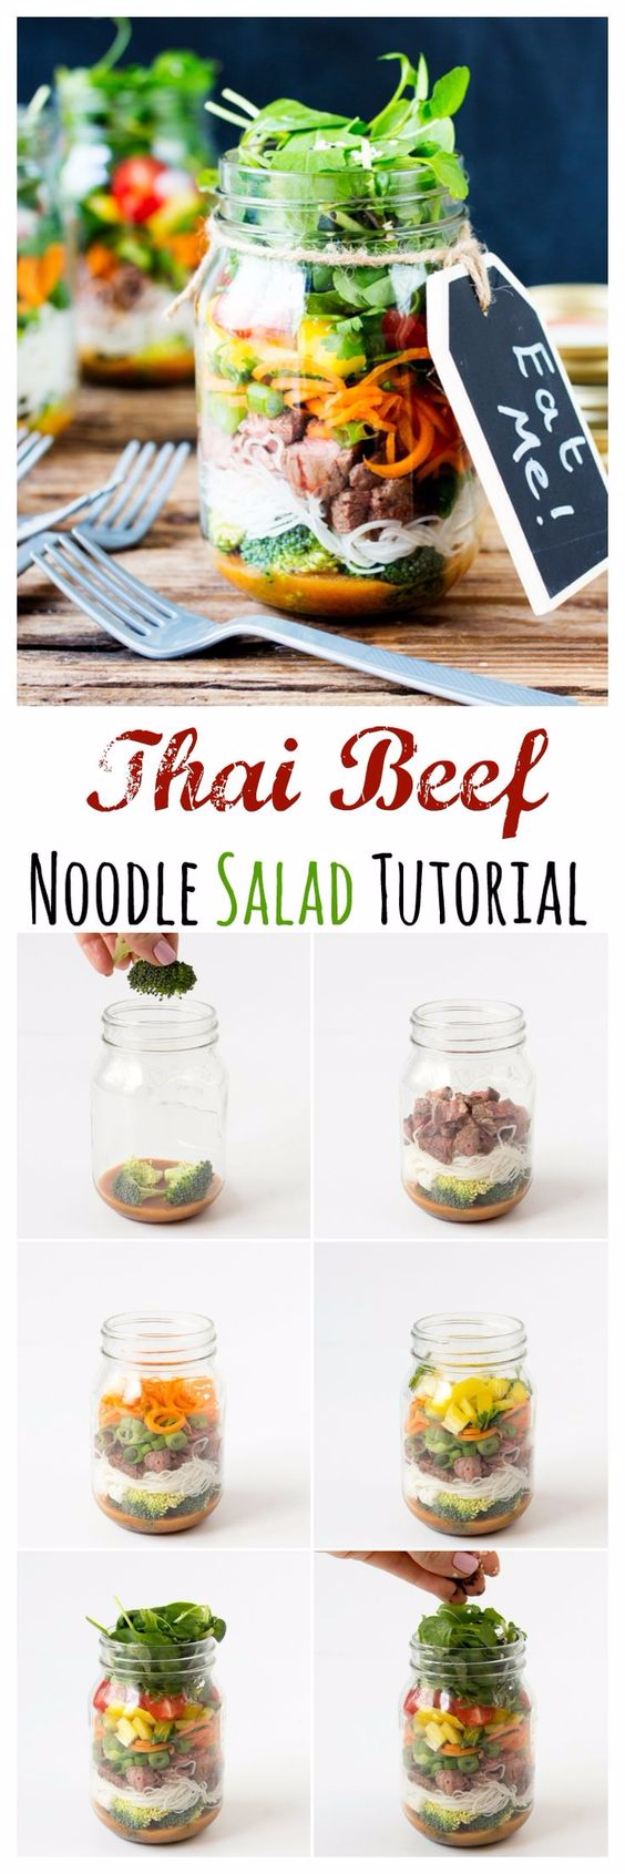 Best Recipes in A Jar - Thai Mason Jar Salad - DIY Mason Jar Gifts, Cookie Recipes and Desserts, Canning Ideas, Overnight Oatmeal, How To Make Mason Jar Salad, Healthy Recipes and Printable Labels